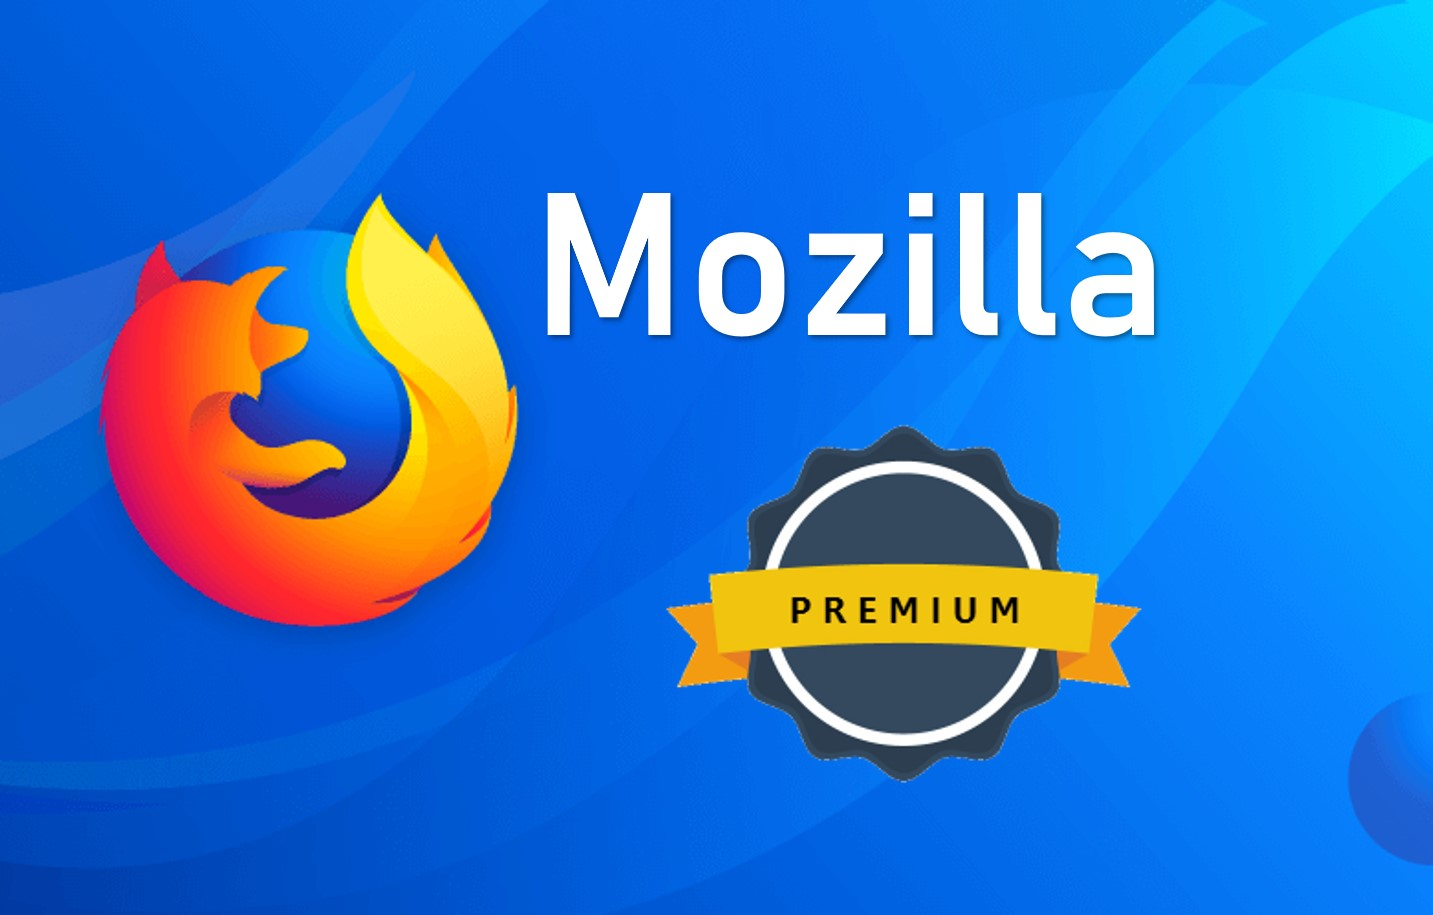 Mozilla revealed new plans for a premium subscription to Firefox